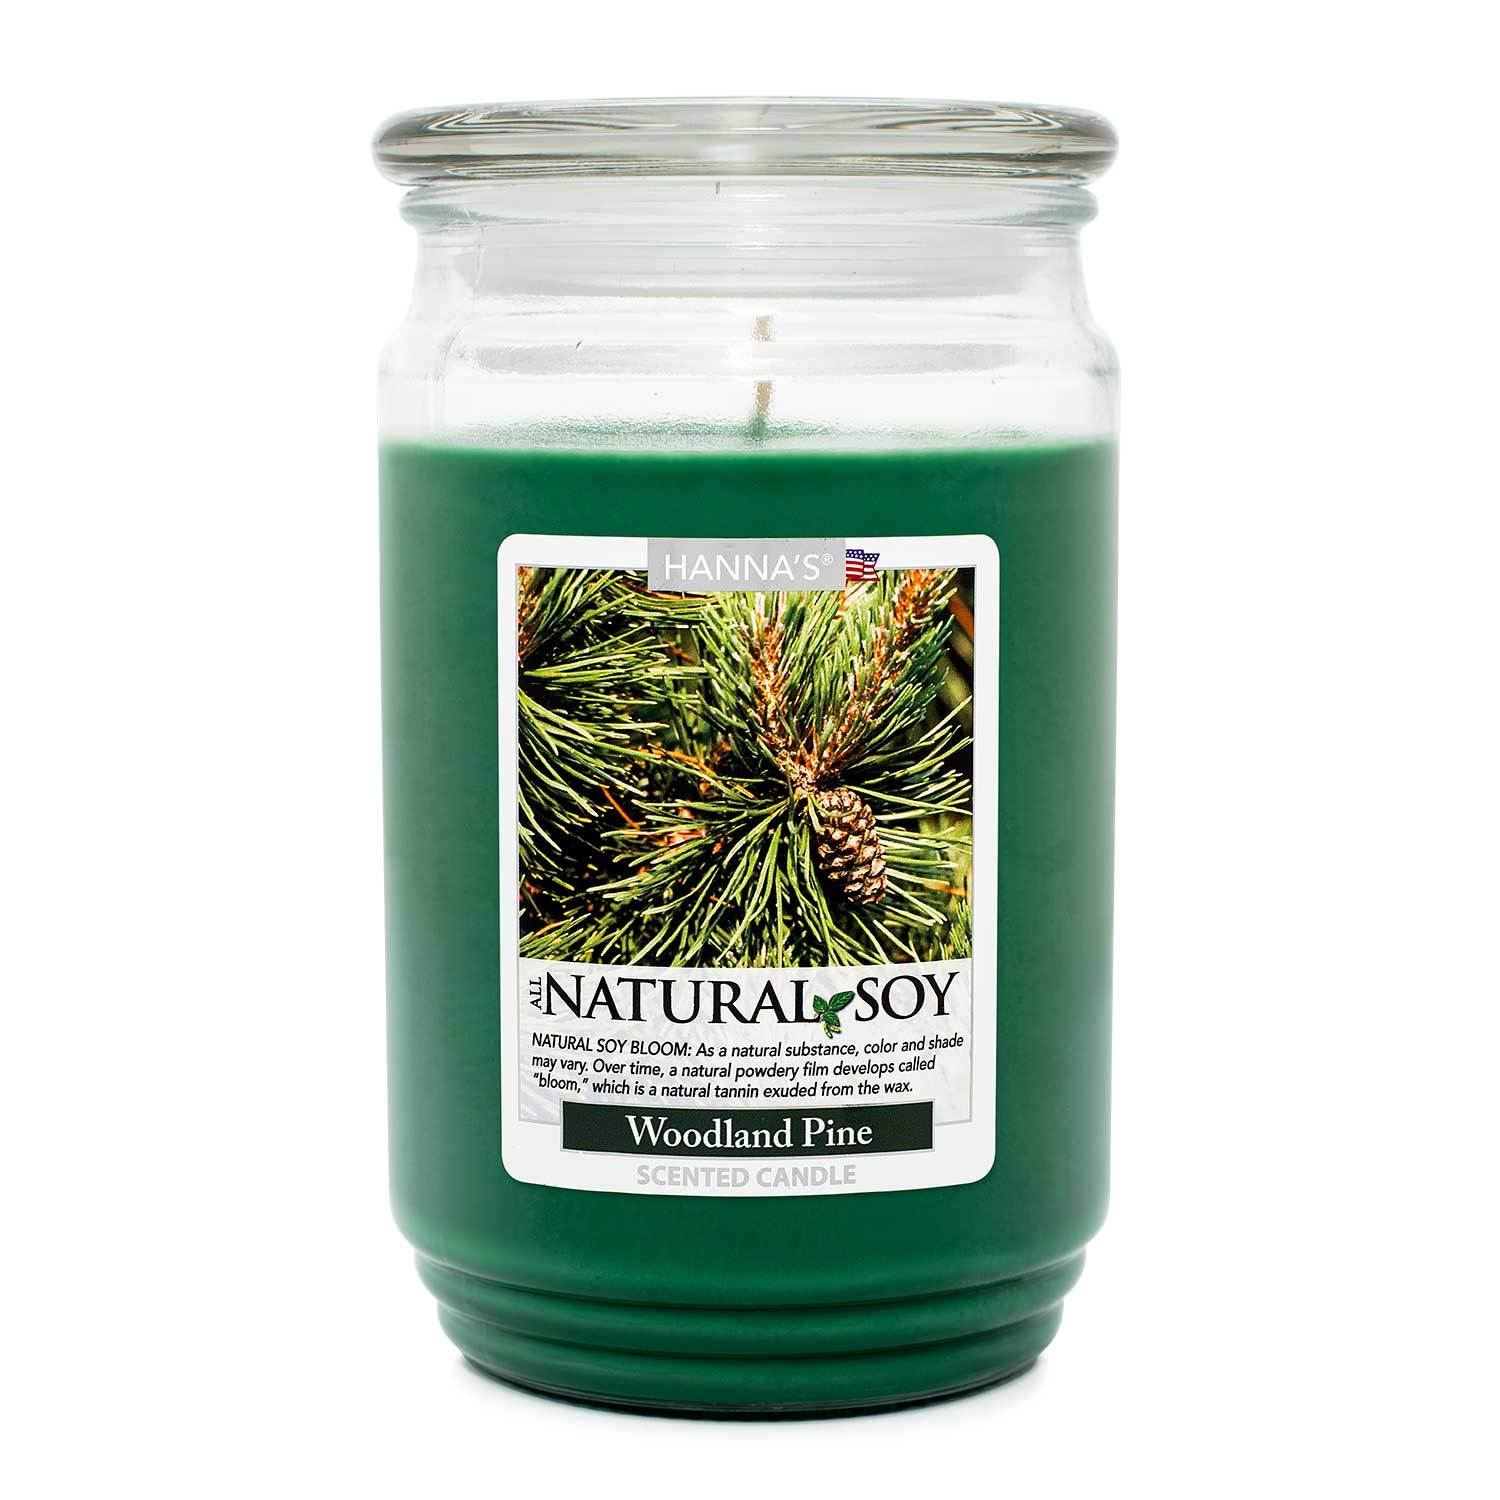 Natural Soy Woodland Pine Scented Soy Candle 100% Soy Candles Candlemart.com $ 12.99